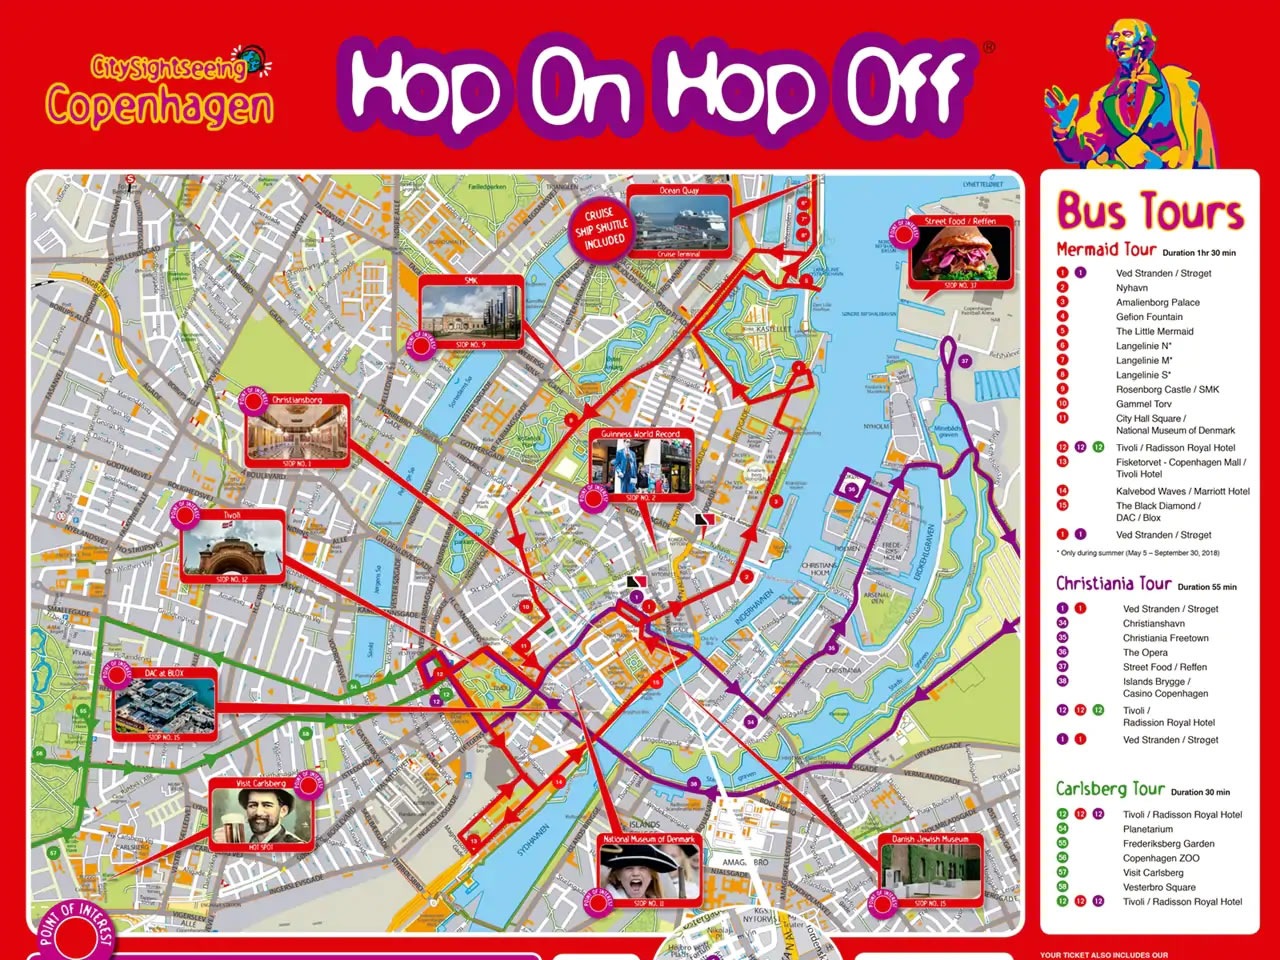 Copenhagen Hop-On Hop-Off Bus Tour Map